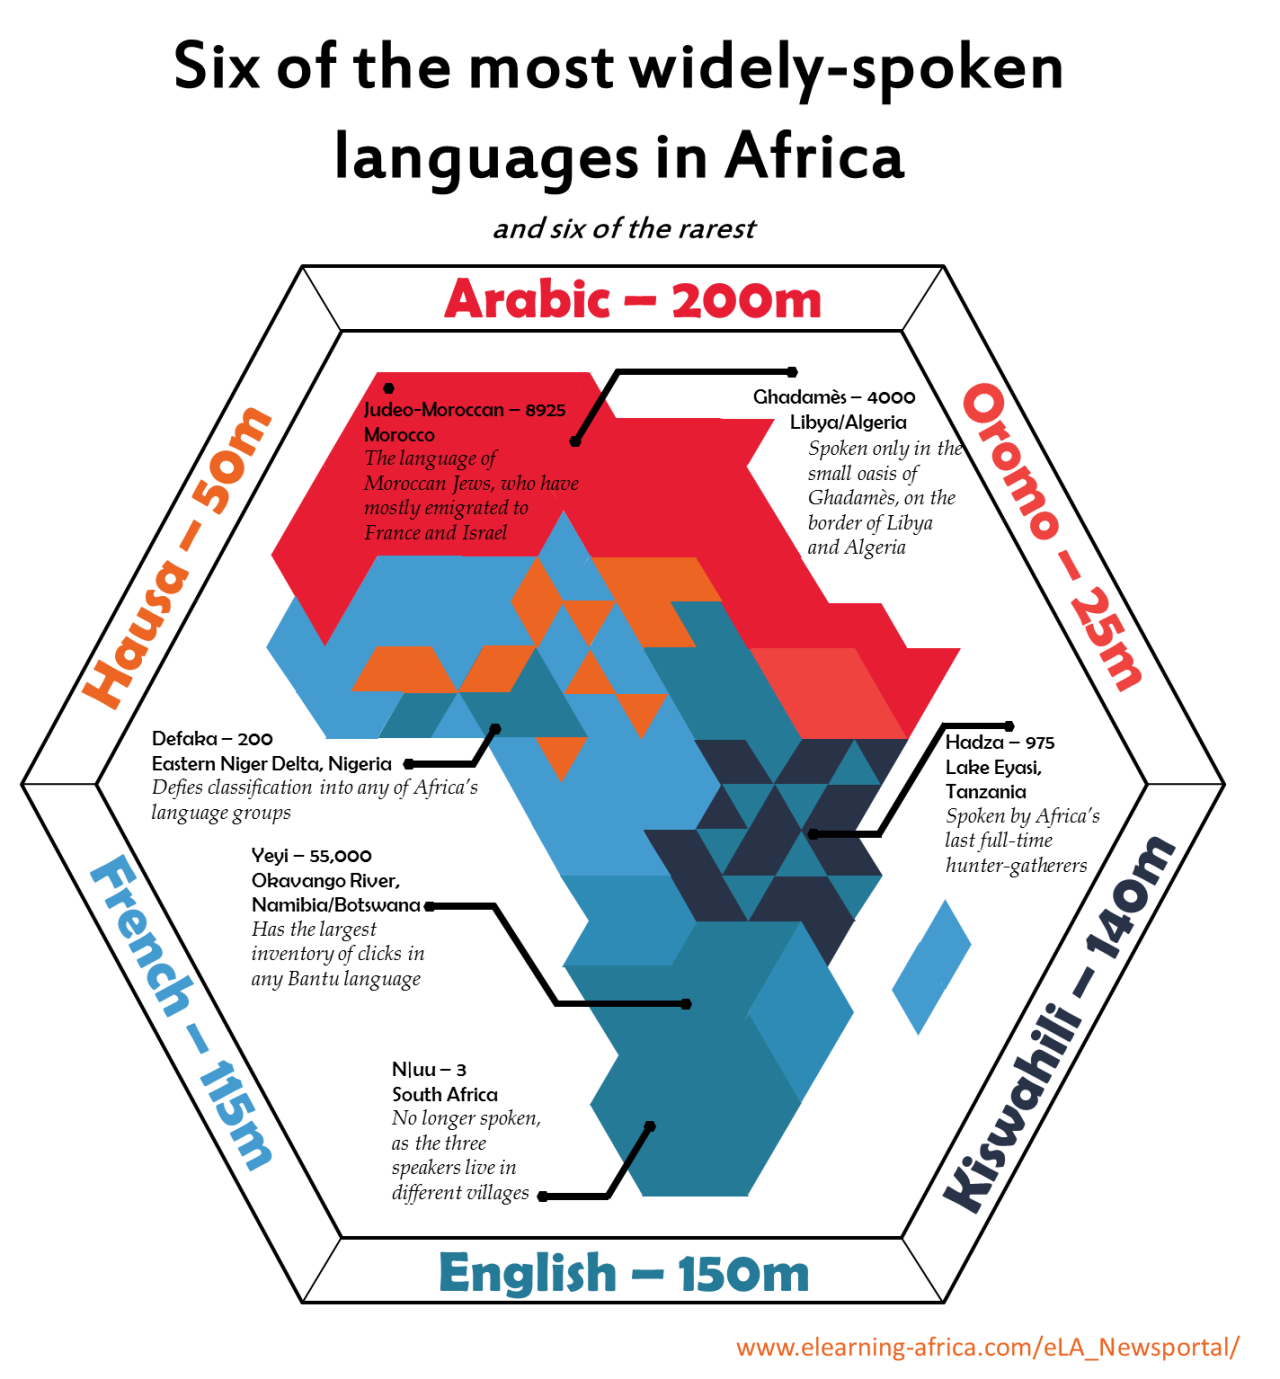 afrique-Six of the most widely-spoken and six of the rarest languages in Africa